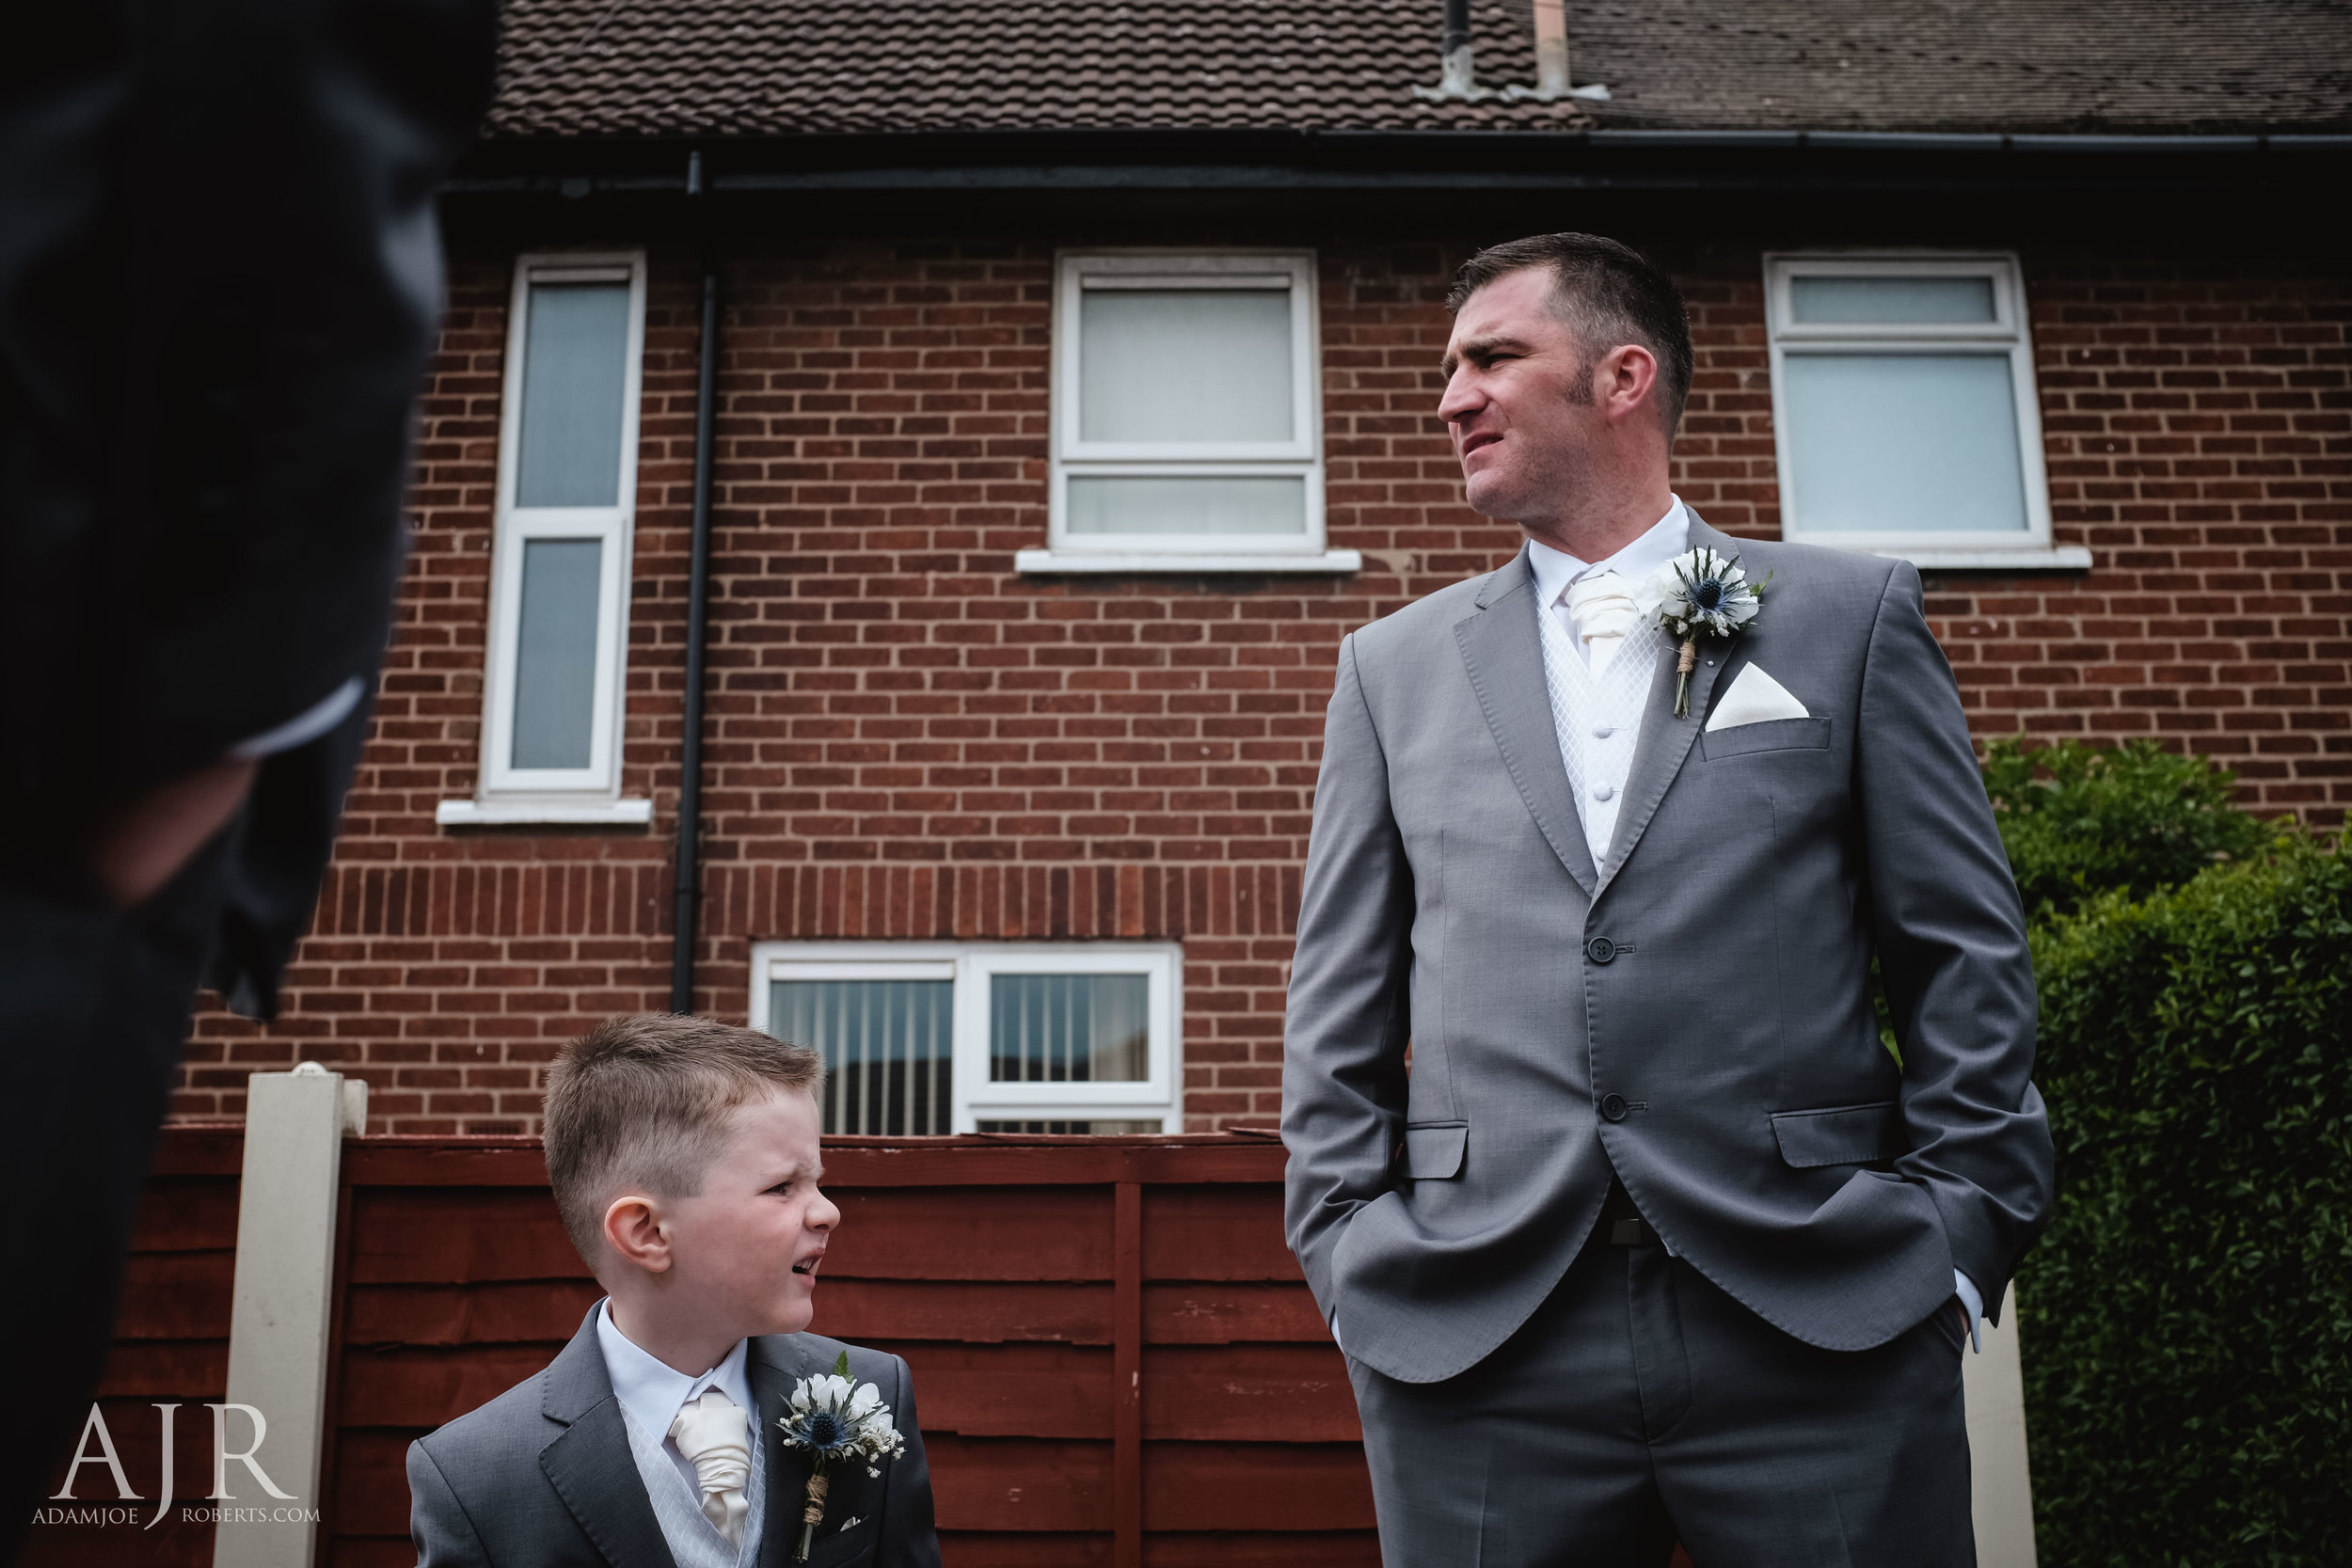 wedding photographer based in widnes cheshire wedding photography liverpool (2 of 9).jpg